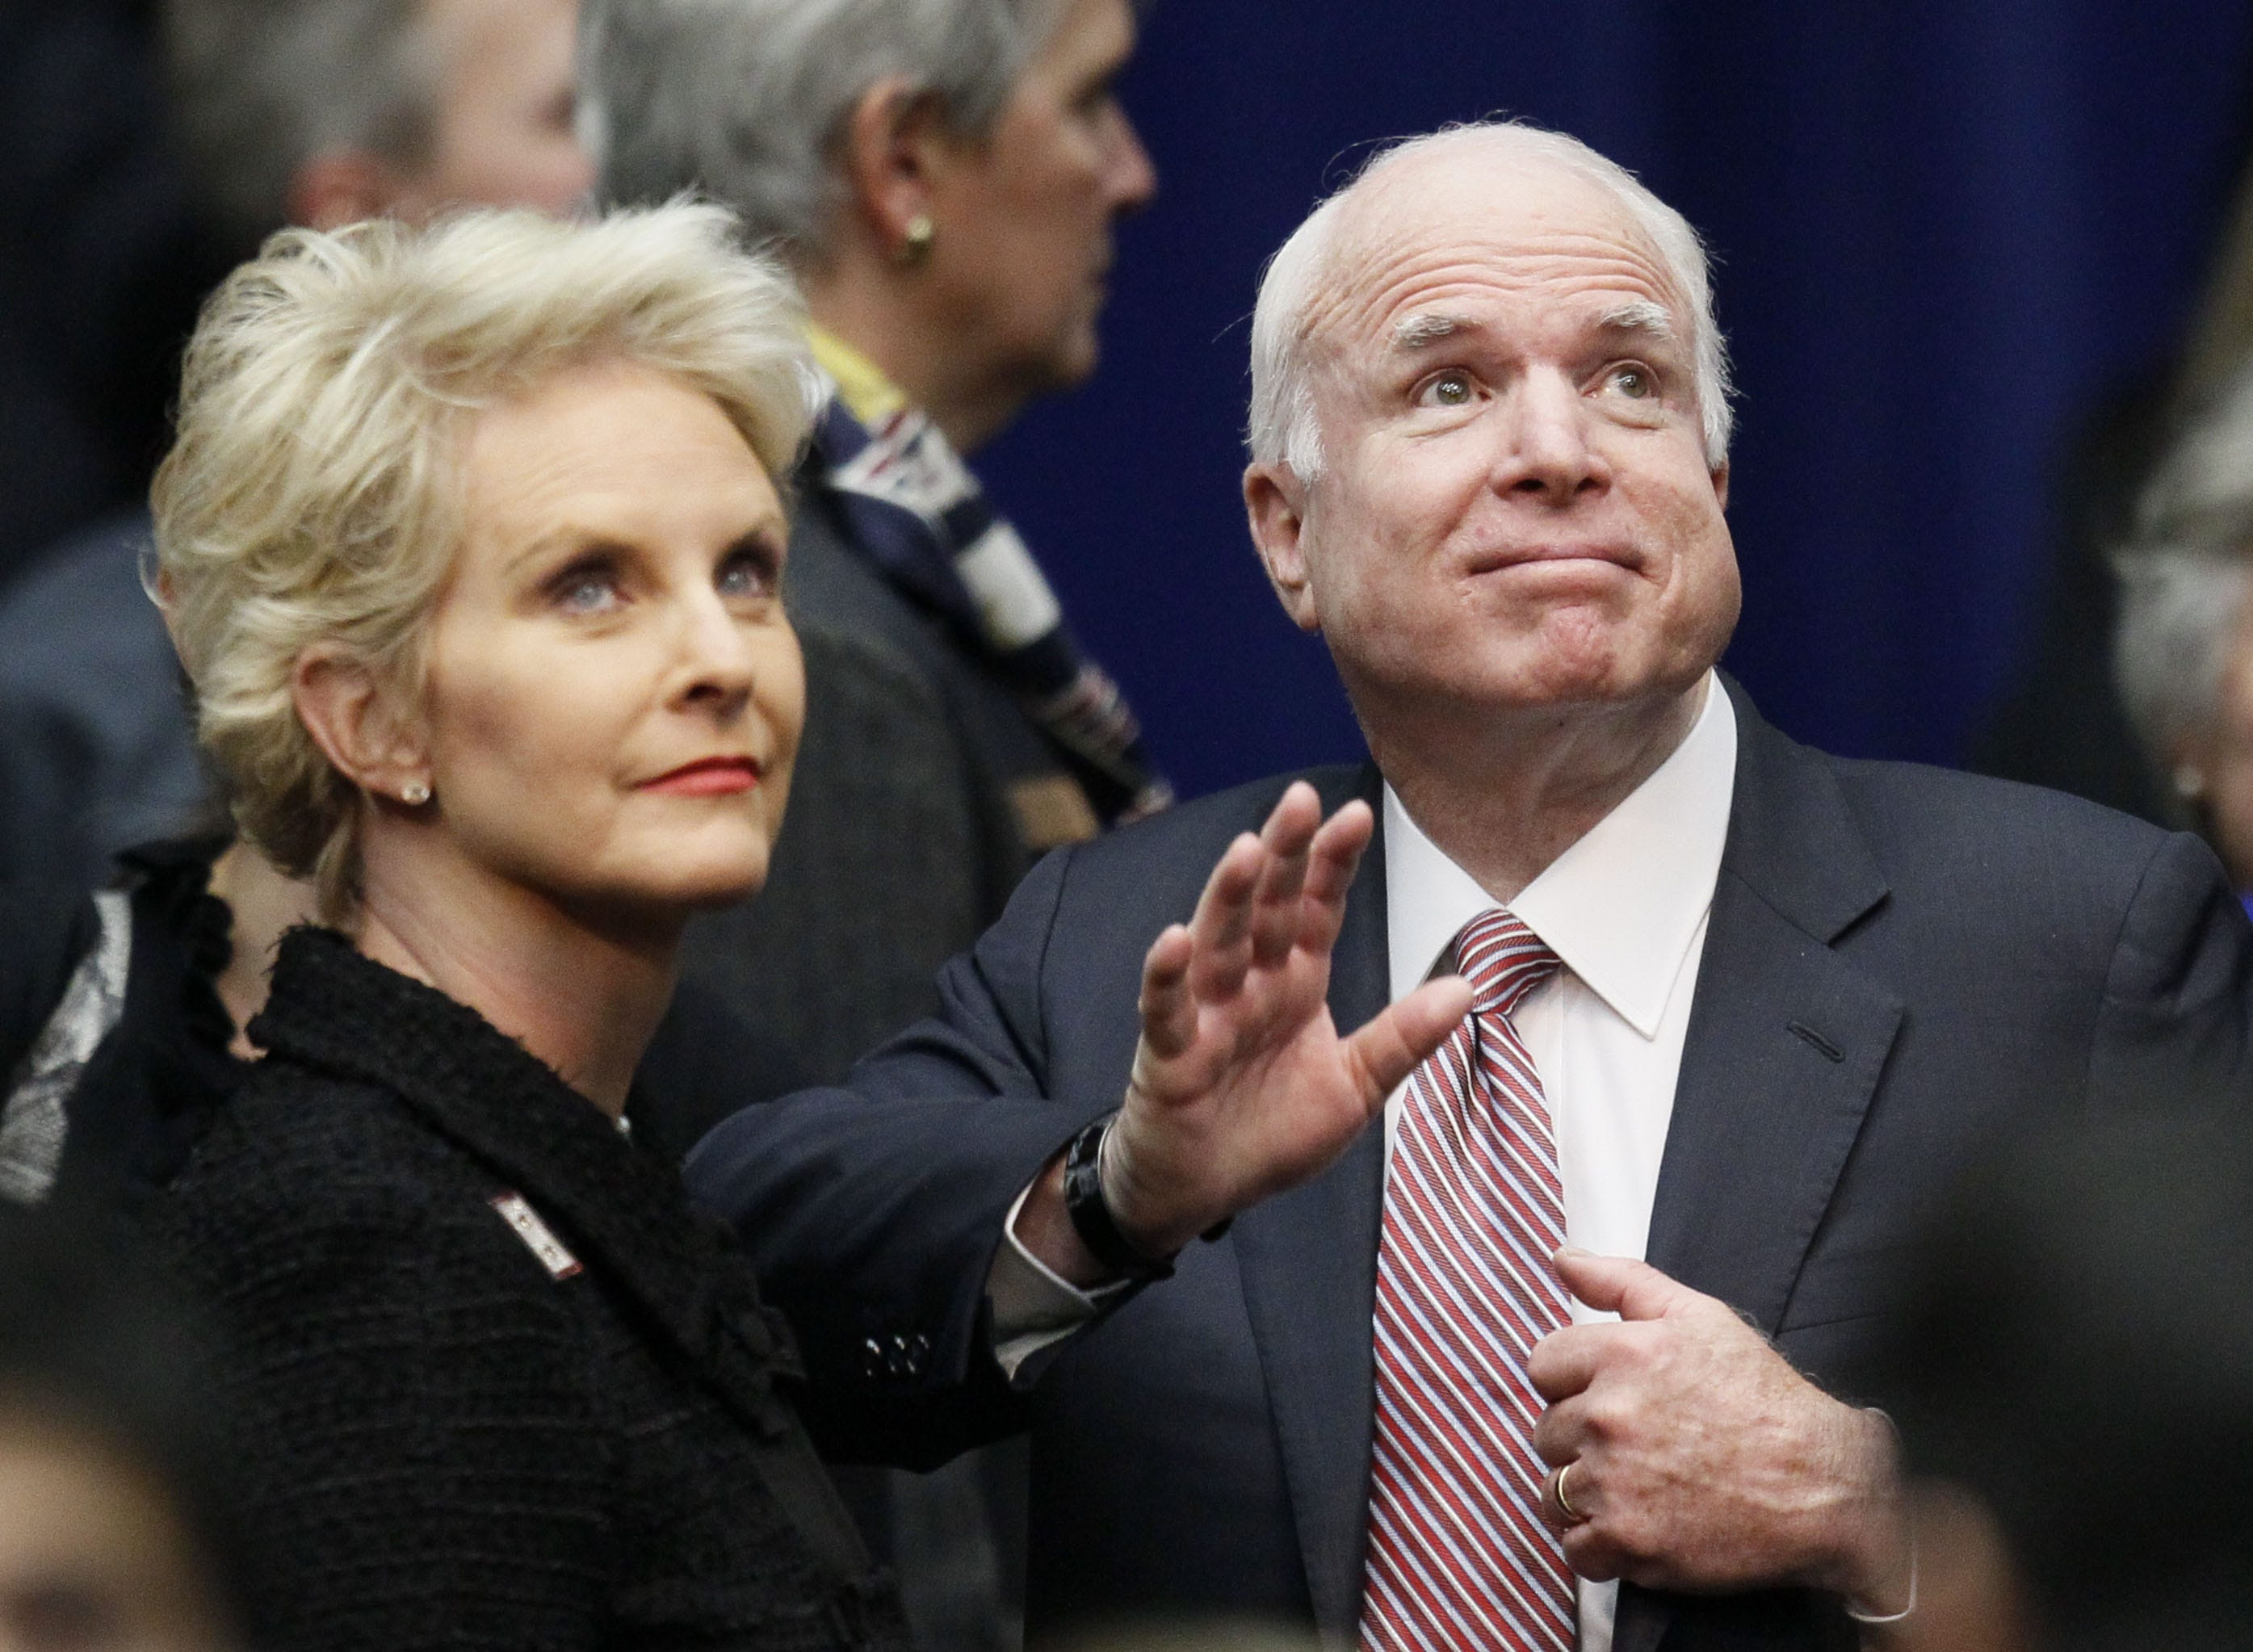 Cindy McCain weeps during powerful rendition of 'Danny Boy